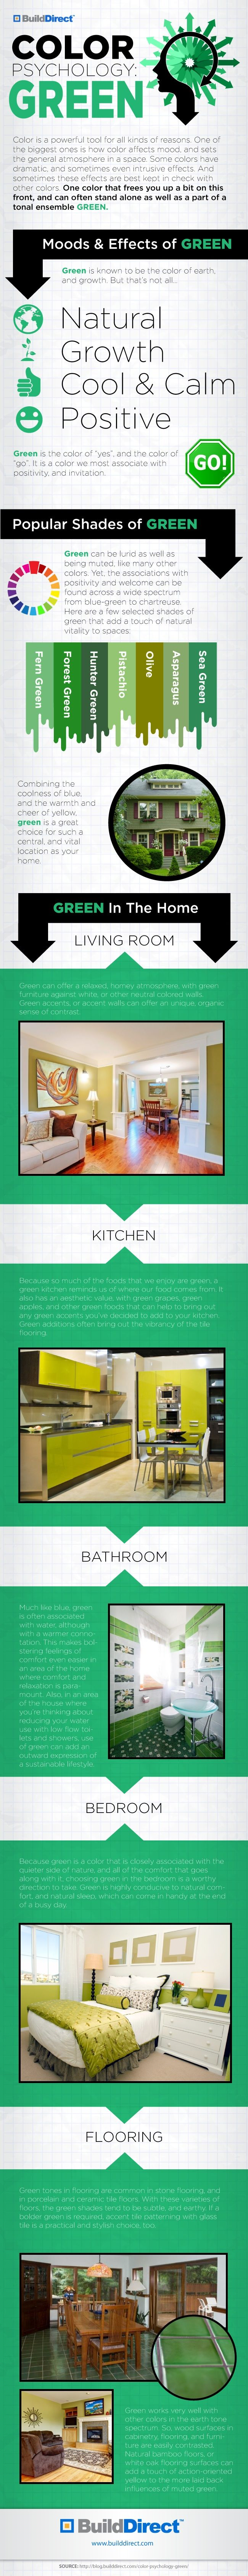 Emotional Interior Design Using Greenbuilddirect Blog Life At Home Color Psychology Green Color Meanings